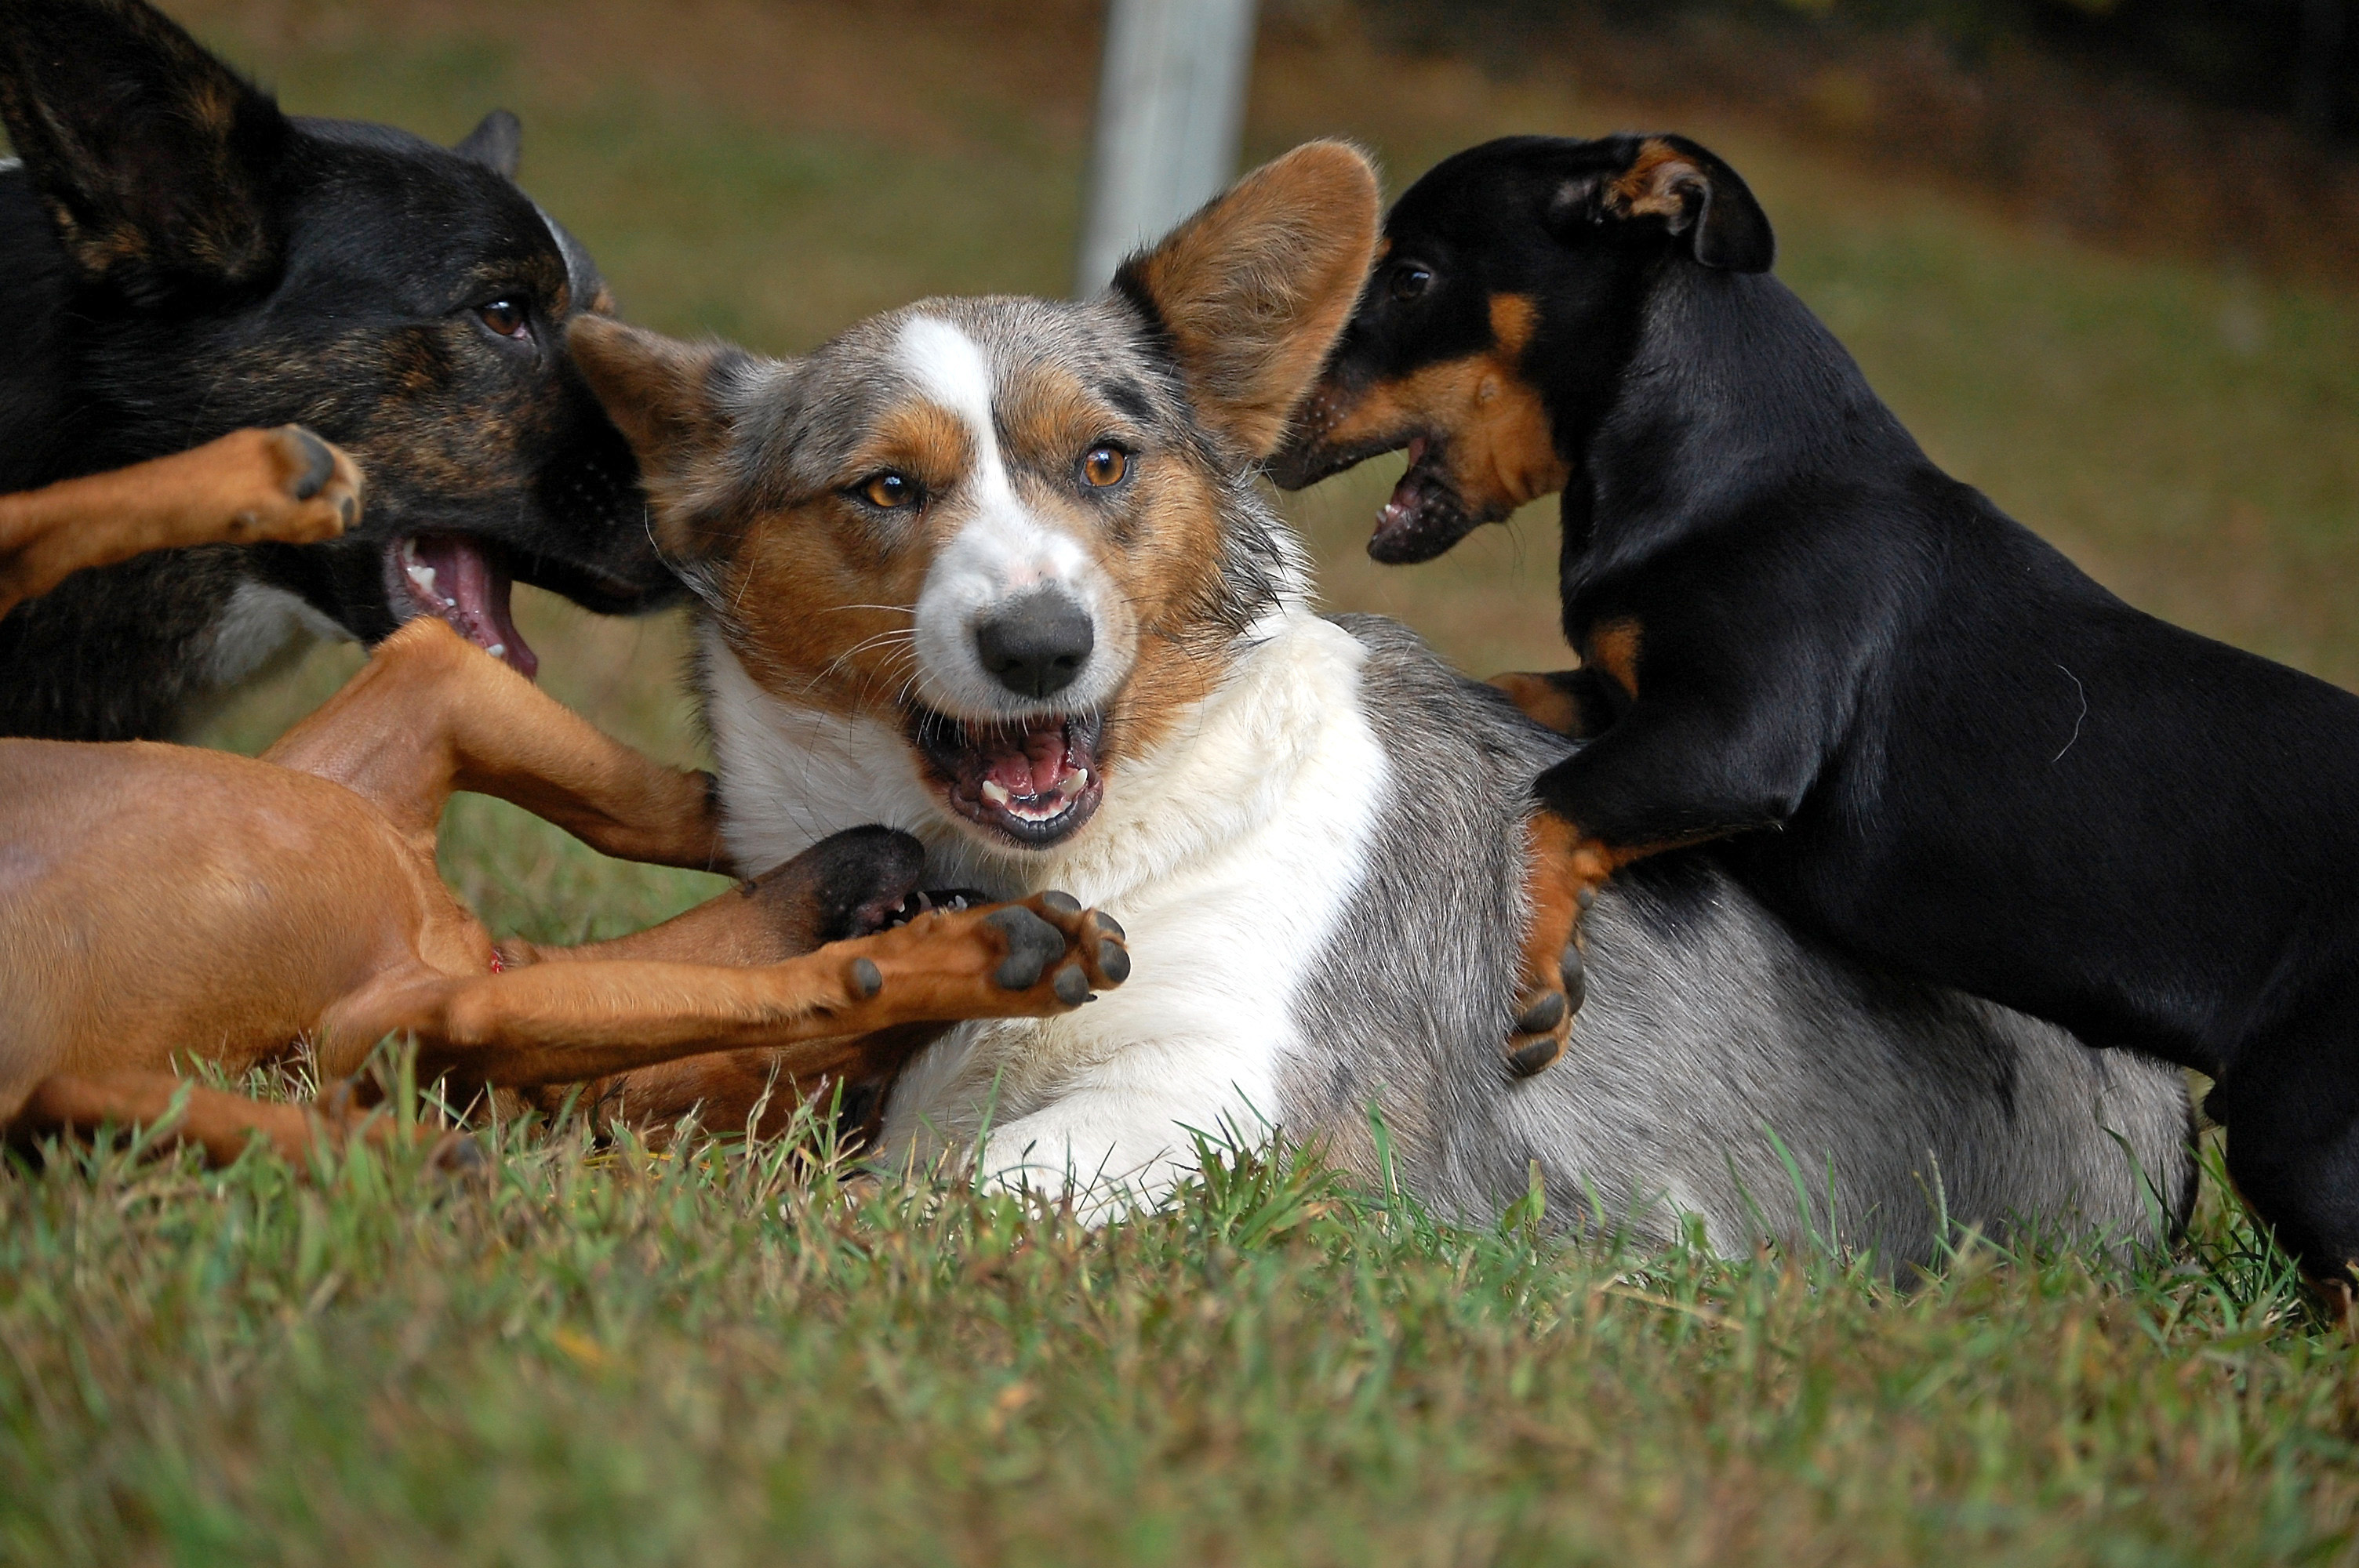 Welsh Corgi Cardigan playing with other dogs wallpaper